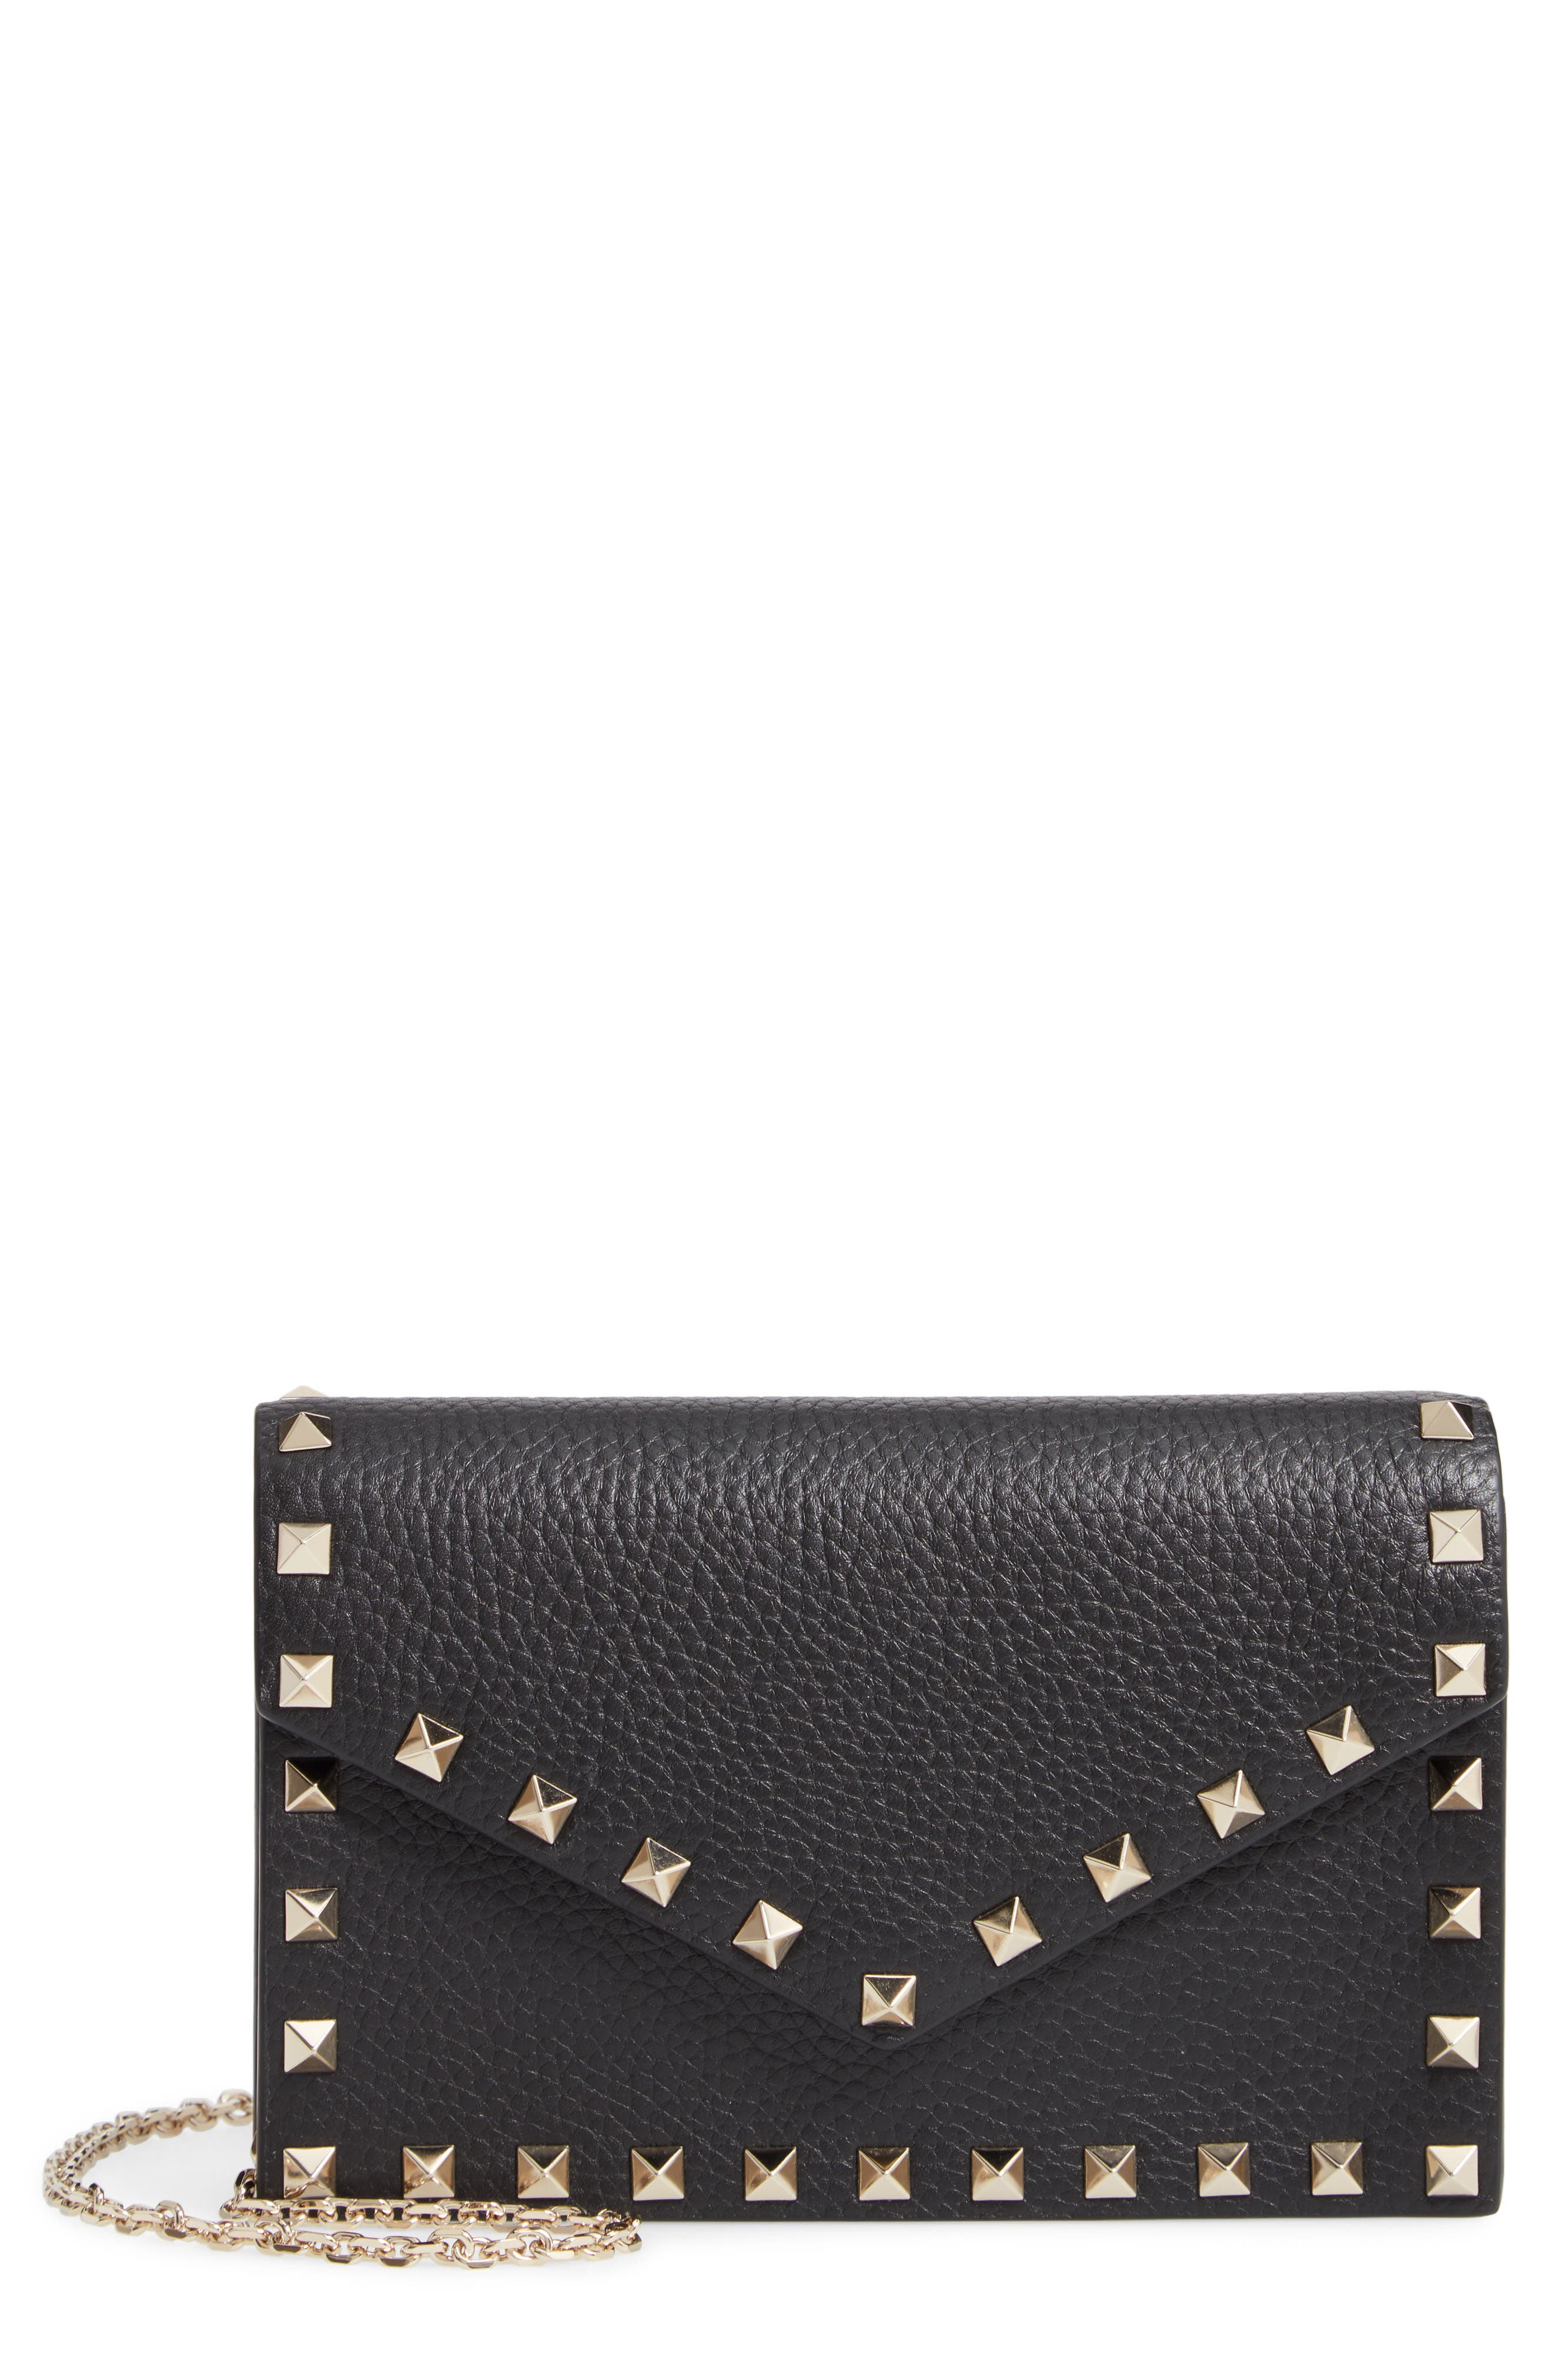 VALENTINO GARAVANI Rockstud Calfskin Leather Envelope Pouch, Main, color, NERO